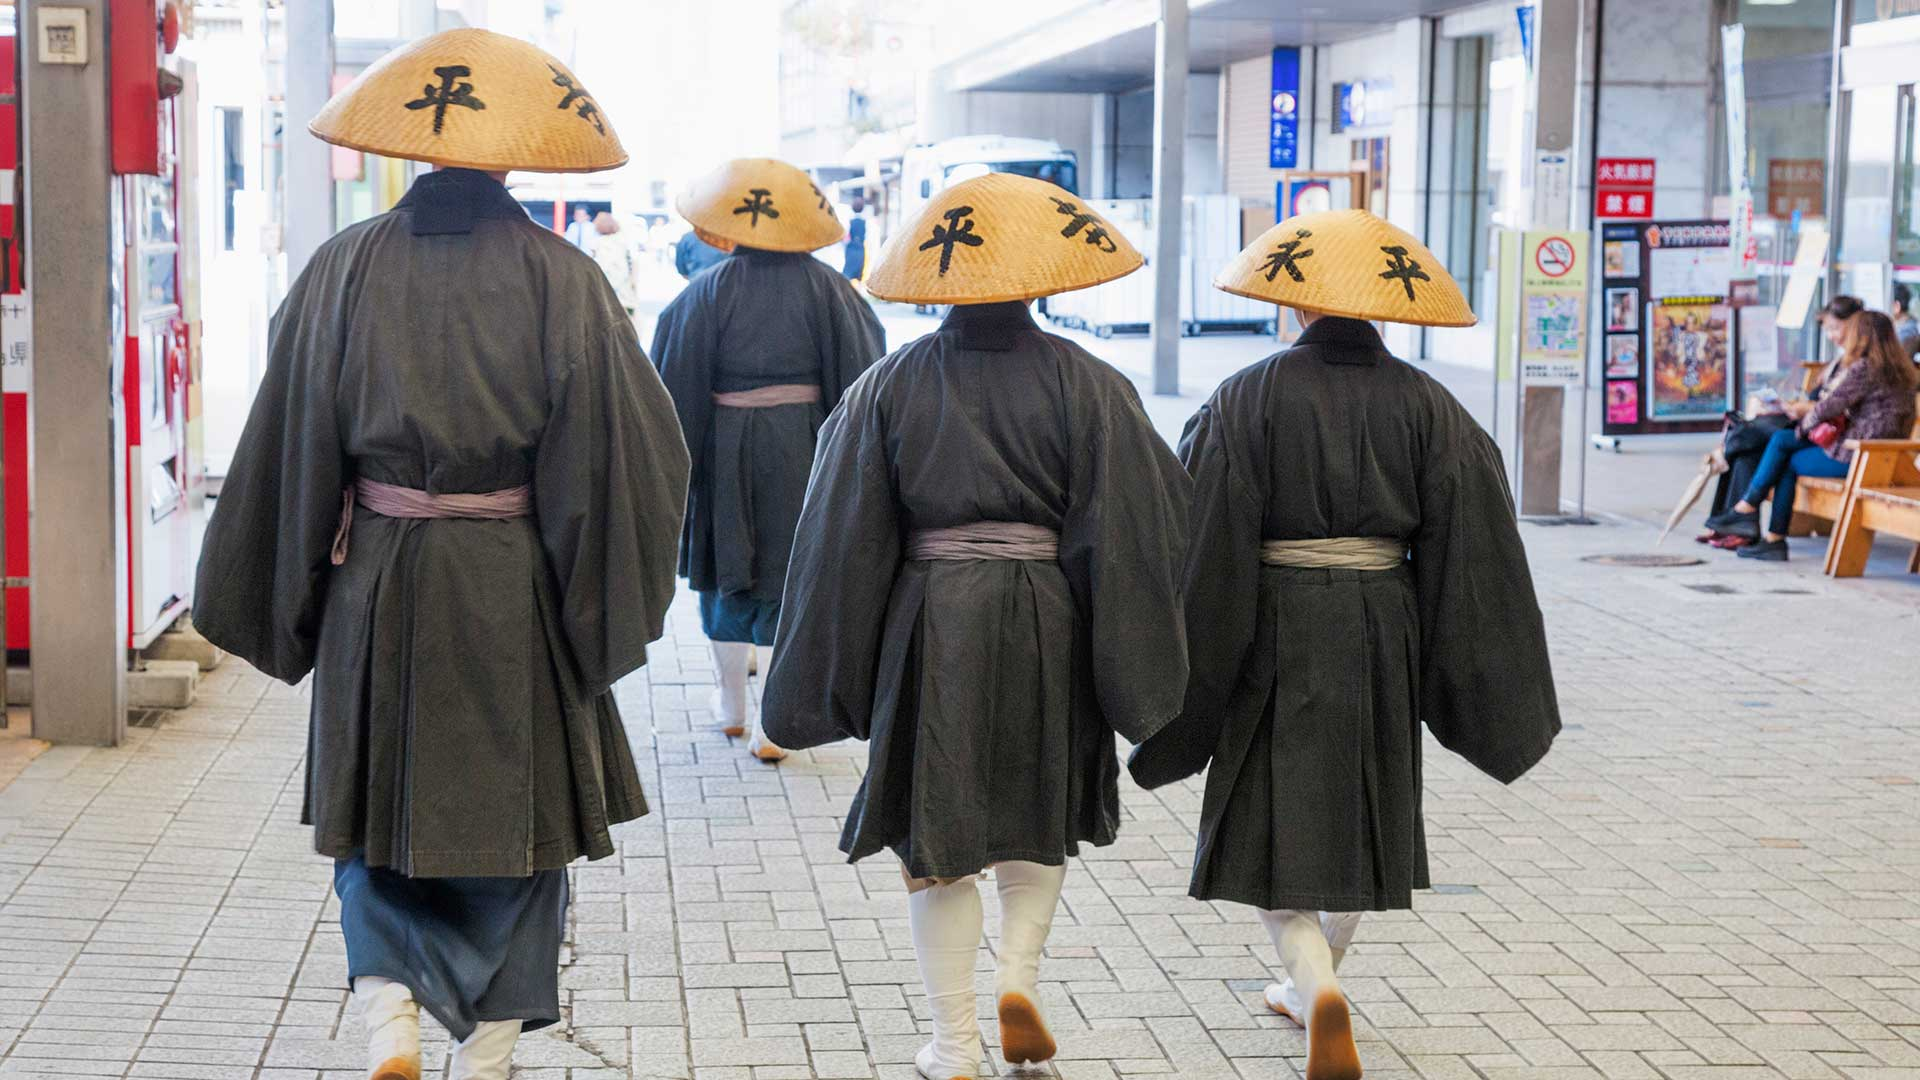 Zen Monks at Tenmonkan-dori Shopping Arcade